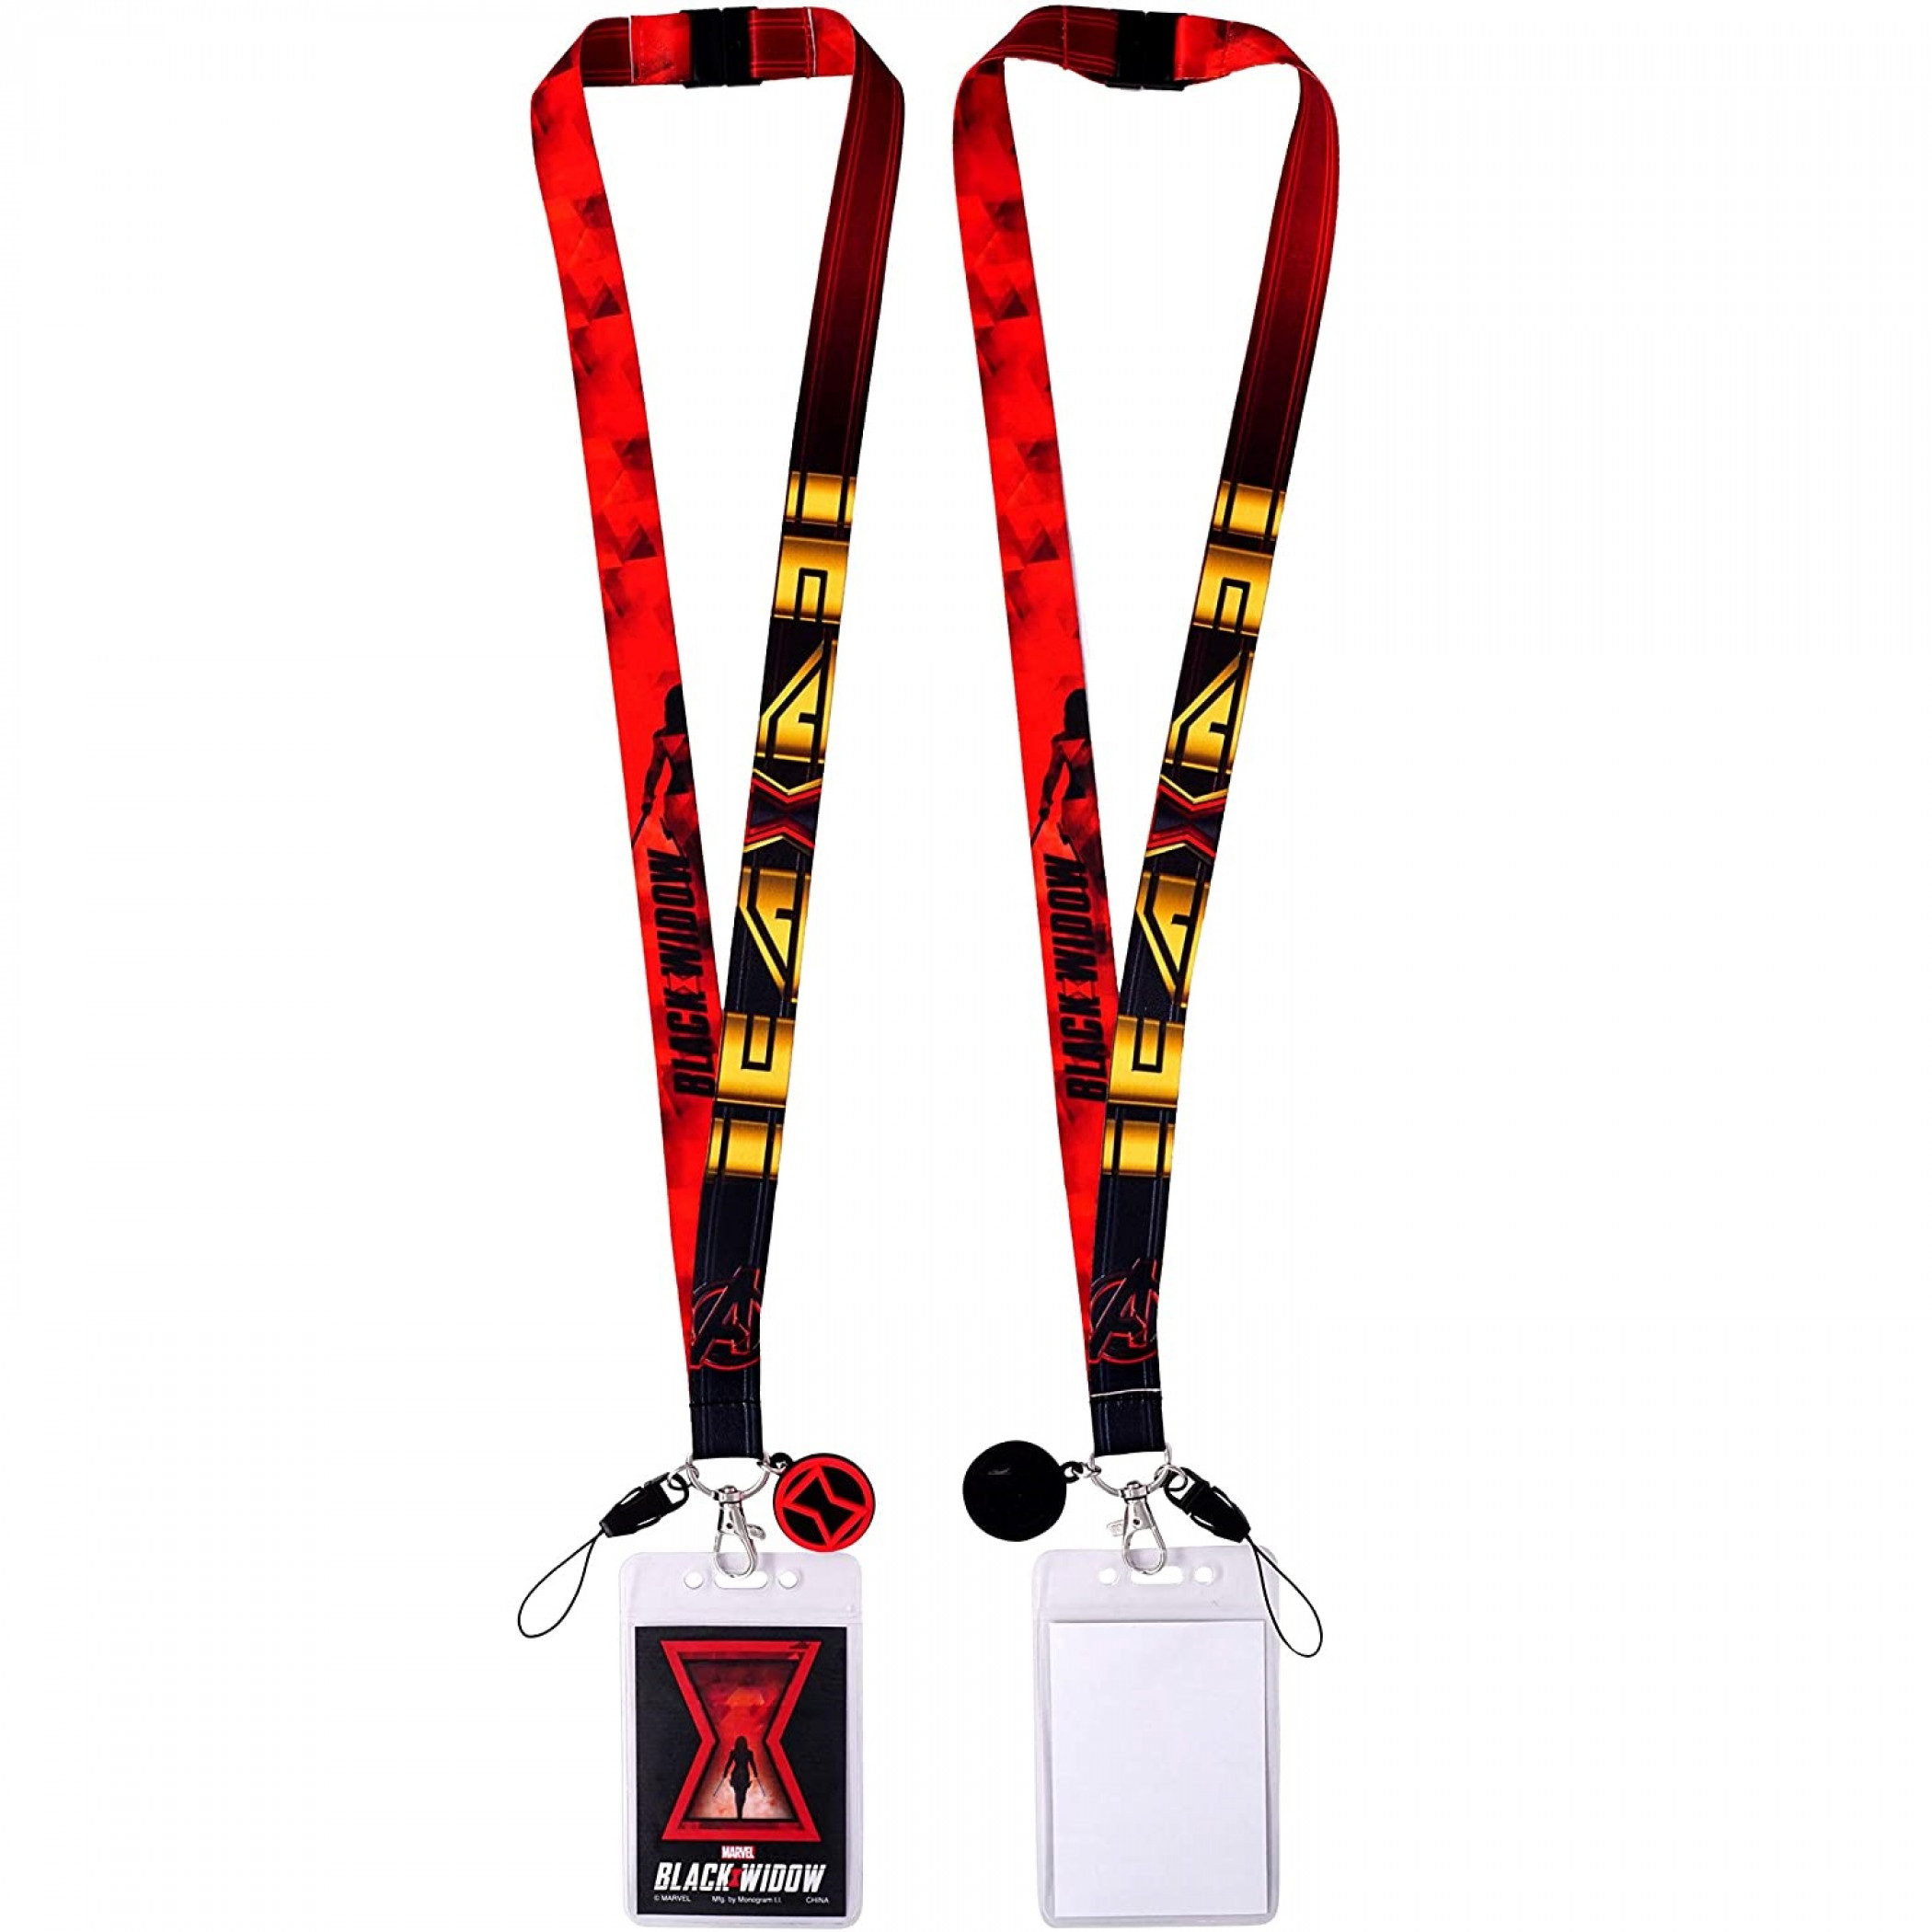 Black Widow Movie Lanyard with Card Holder and Charm